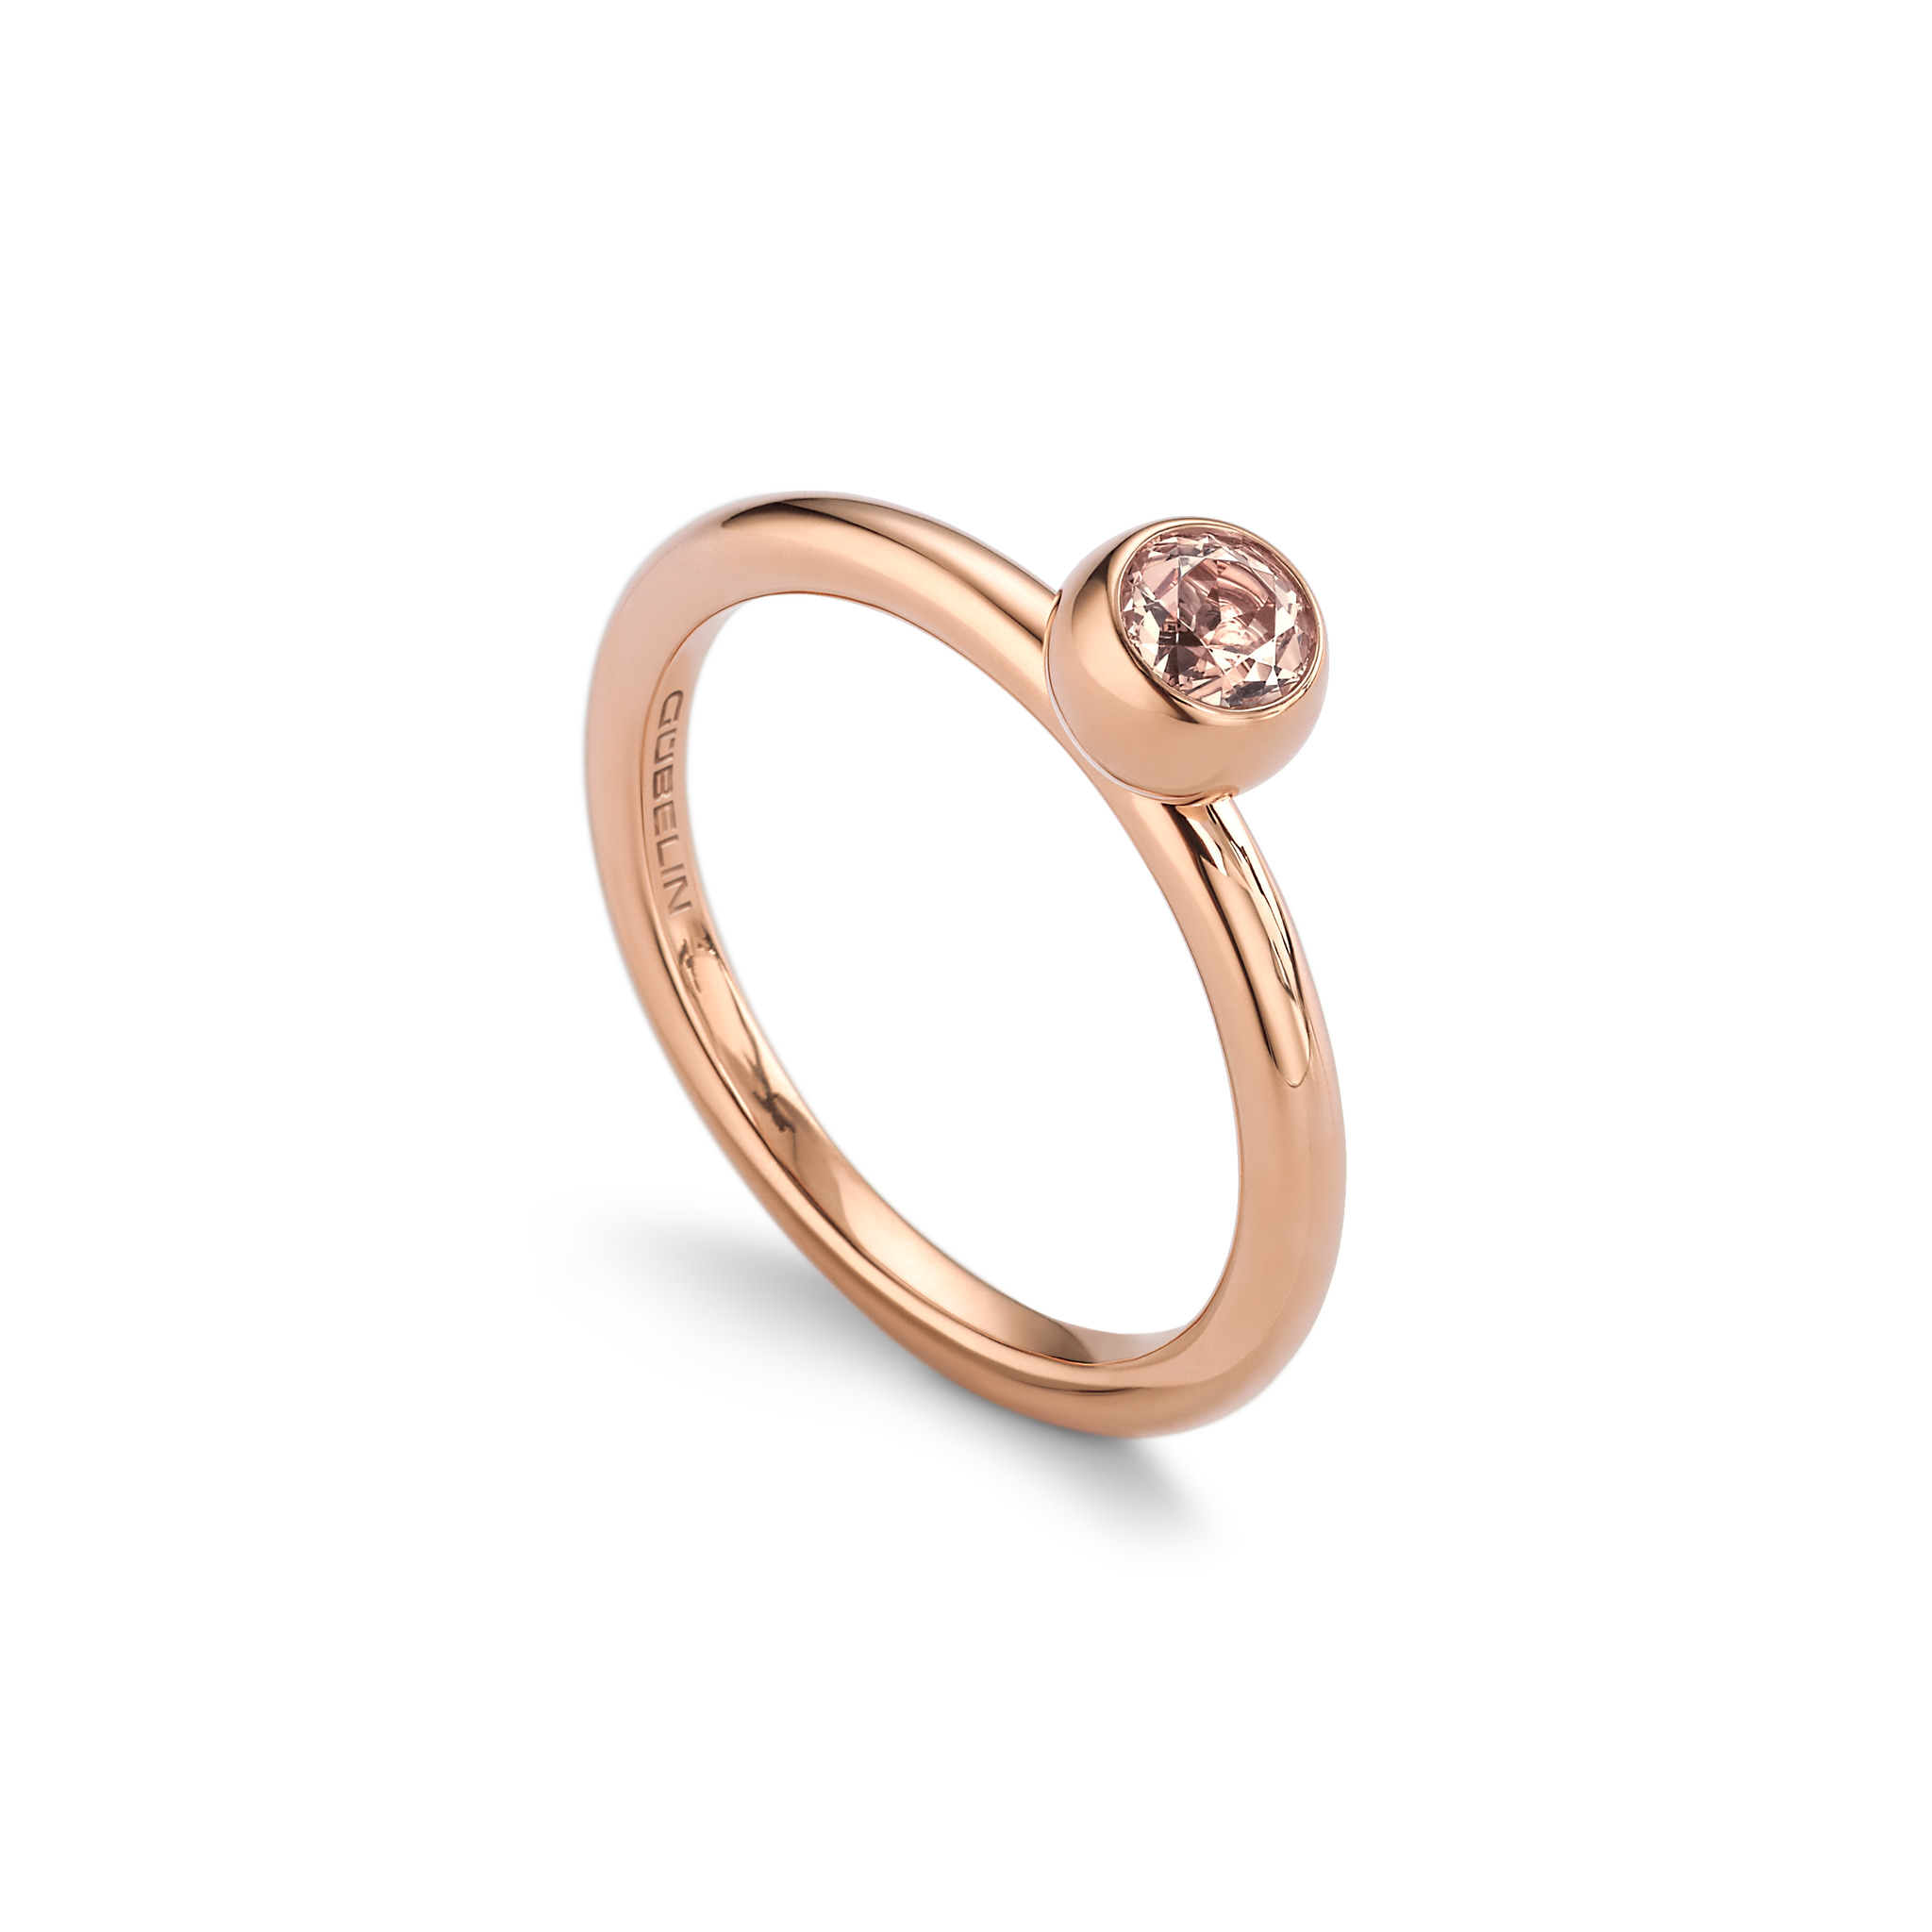 Ring with morganite